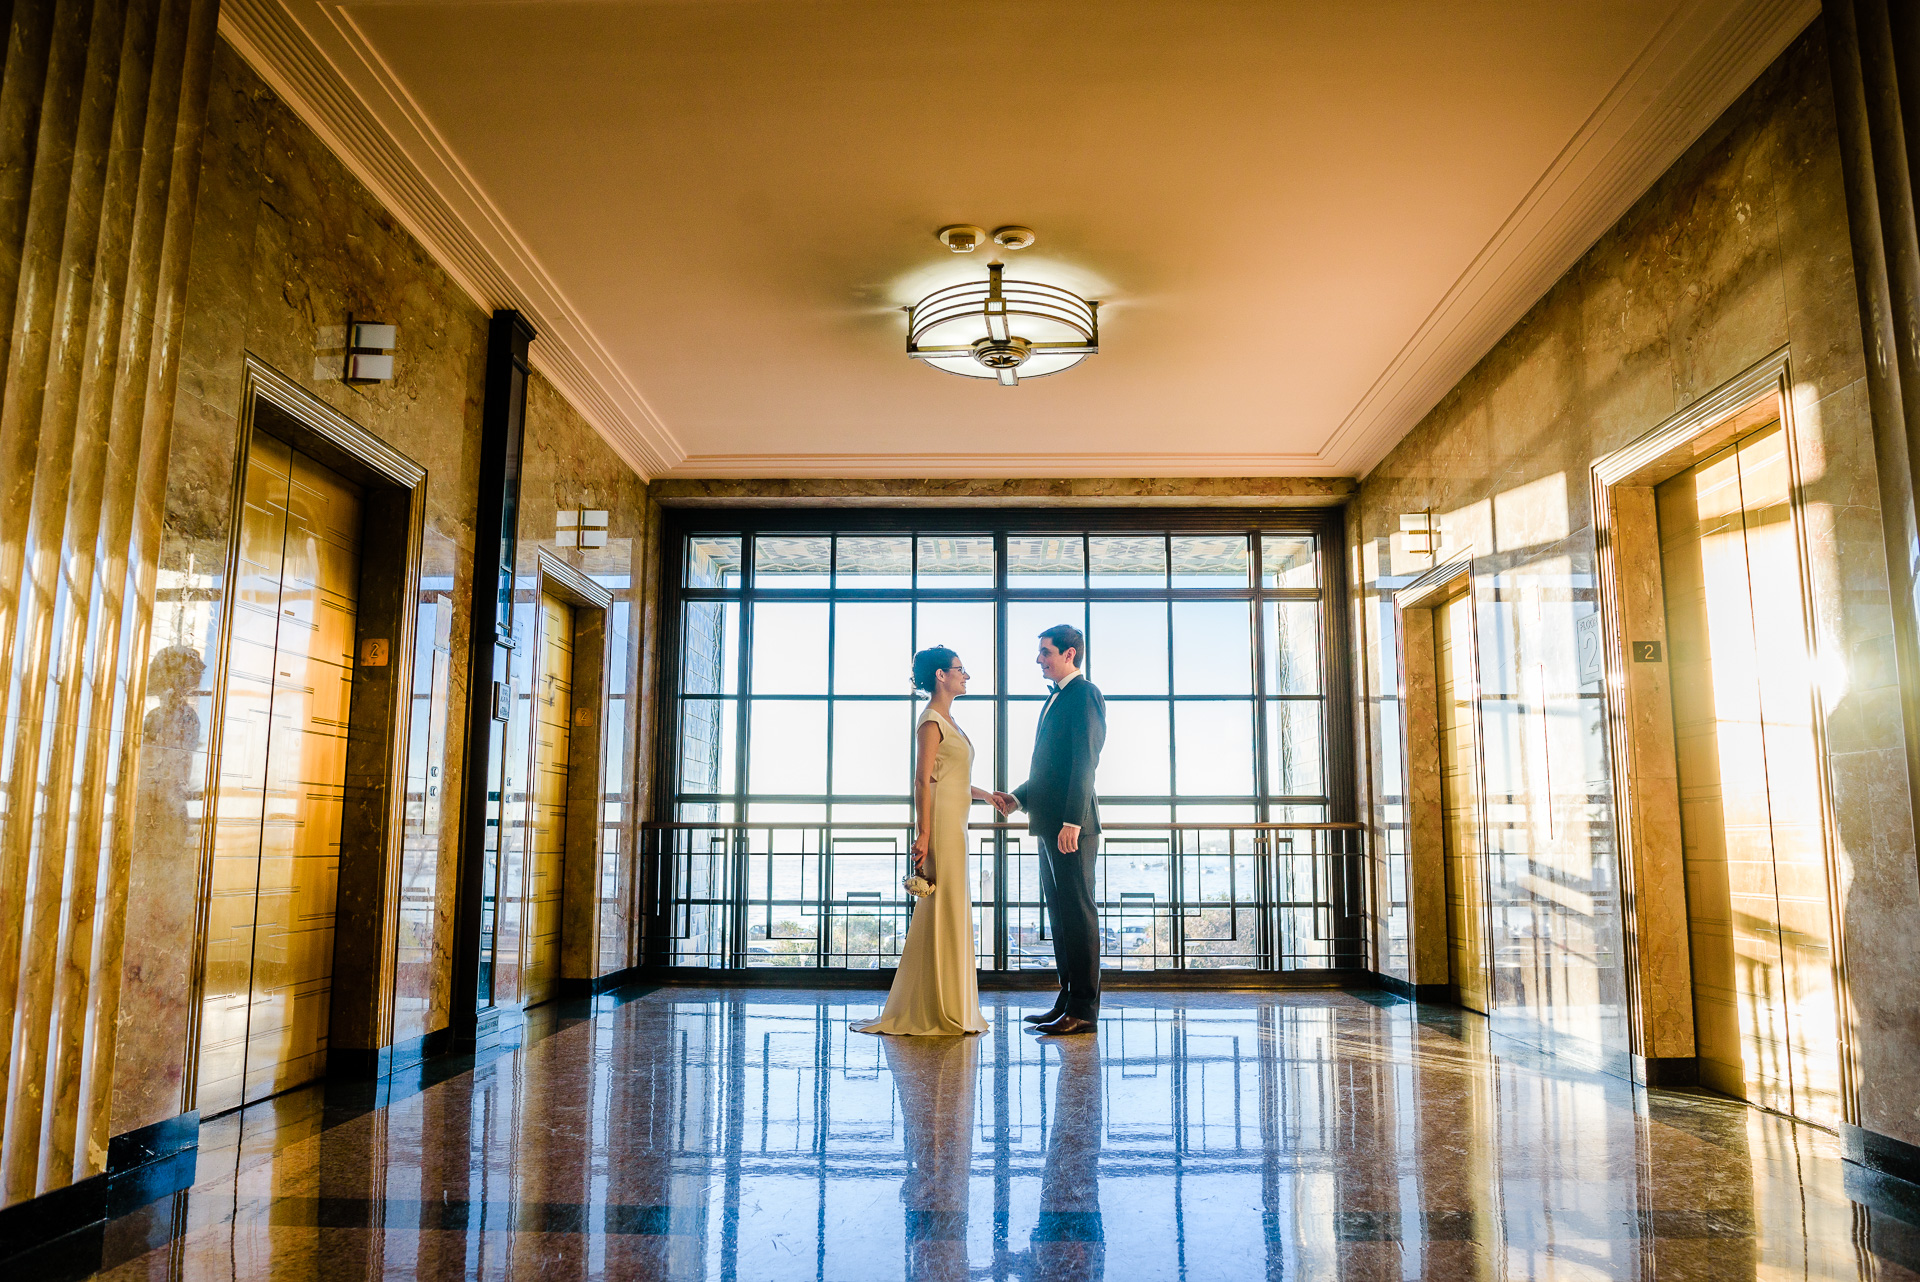 12.29.17 - Michelle and Tommaso Wedding - San Diego Courthouse -  Paul Douda Photography - 081.jpg